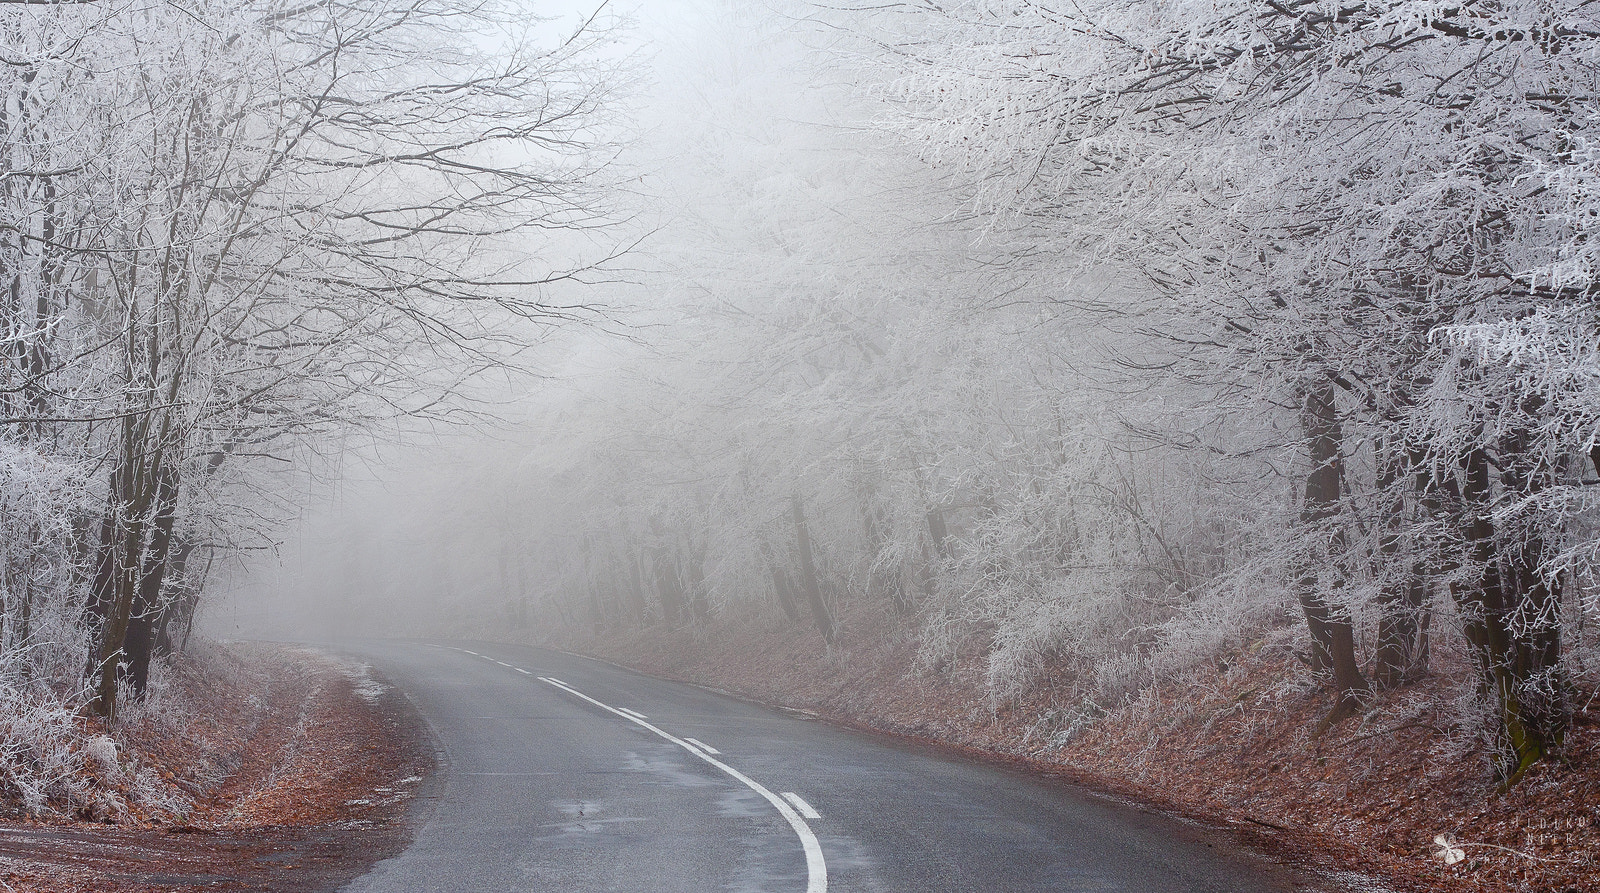 Photograph Frosty Road by Ildiko Neer on 500px